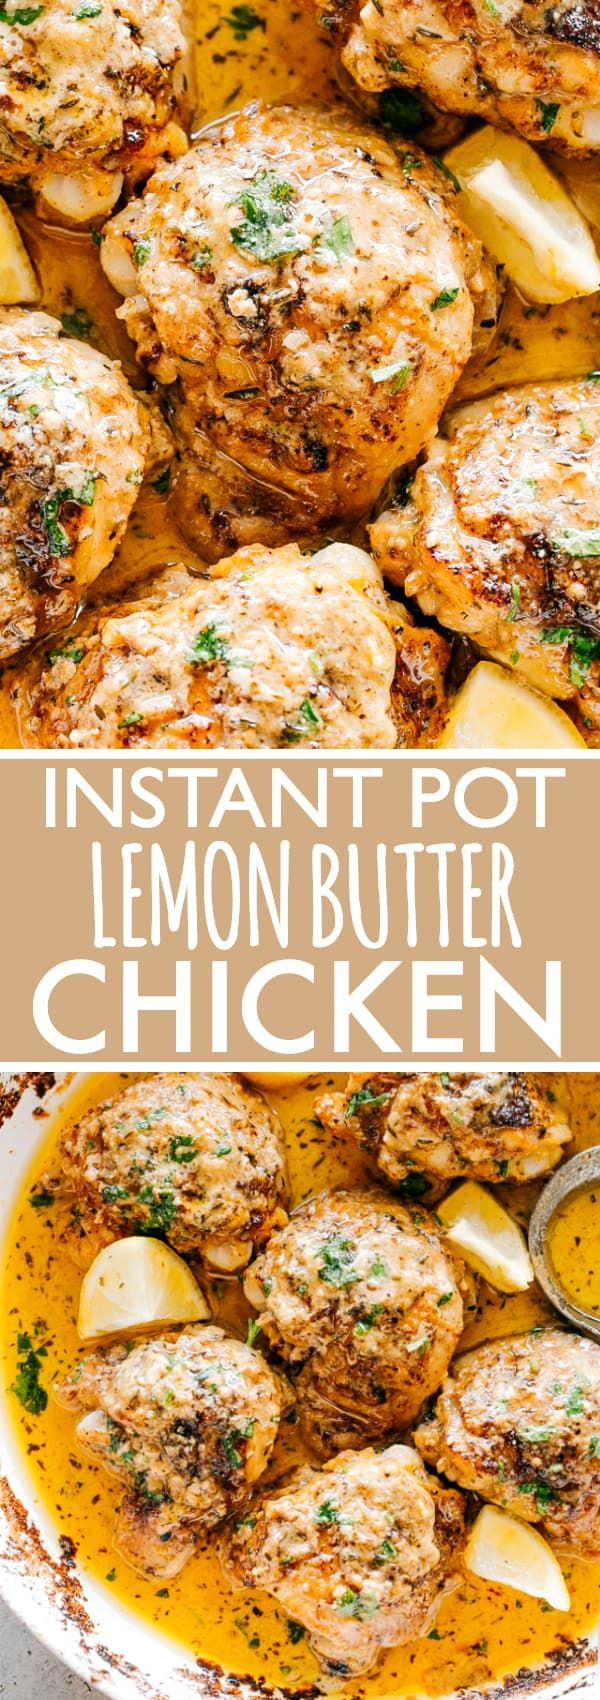 Instant Pot Lemon Butter Chicken - Juicy and tender chicken thighs cooked in the Instant Pot with the perfect sauce made from butter, lemon juice, plenty of garlic and herbs. This is outrageously delicious! #instantpotrecipes #instantpotchicken #chickenrecipes via @diethood #instantpotchickenrecipes